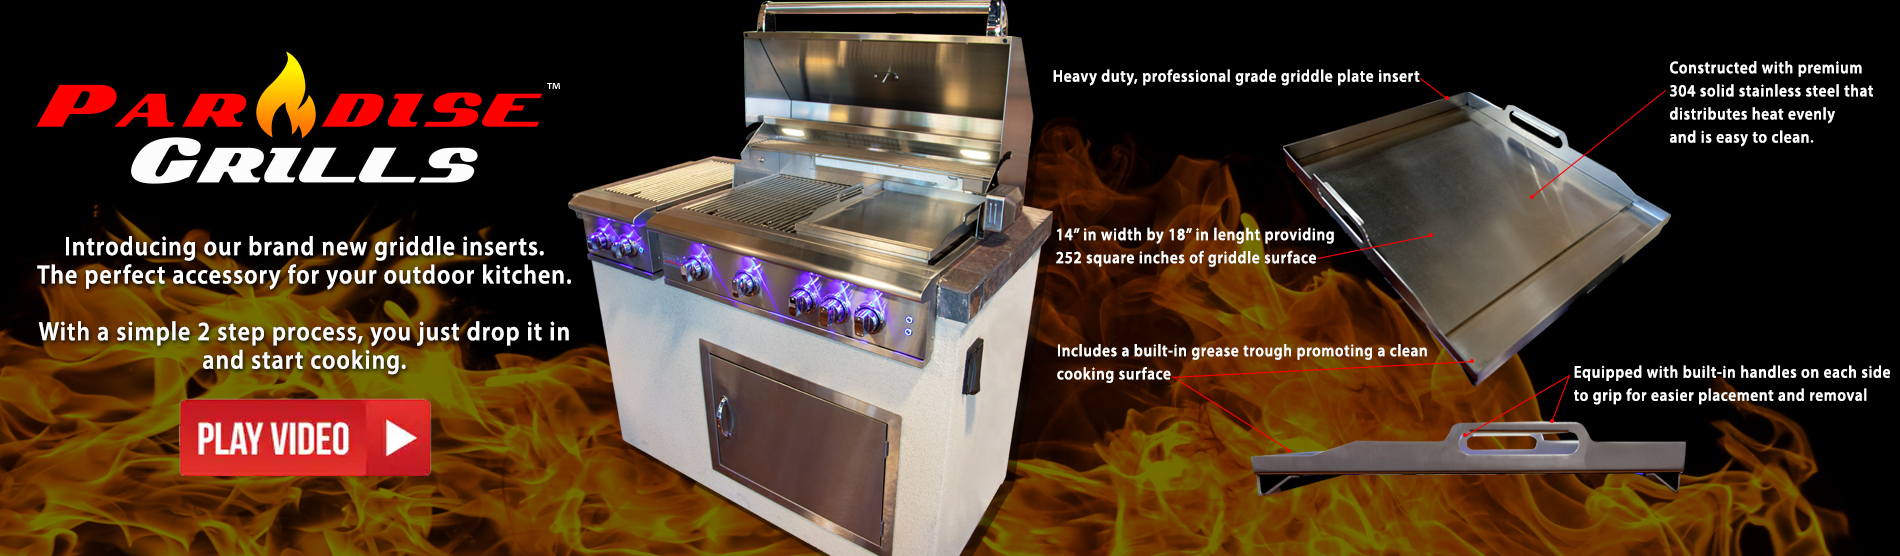 Paradise Grilling Systems Outdoor Kitchens, Bars, Grills, Fire Pits